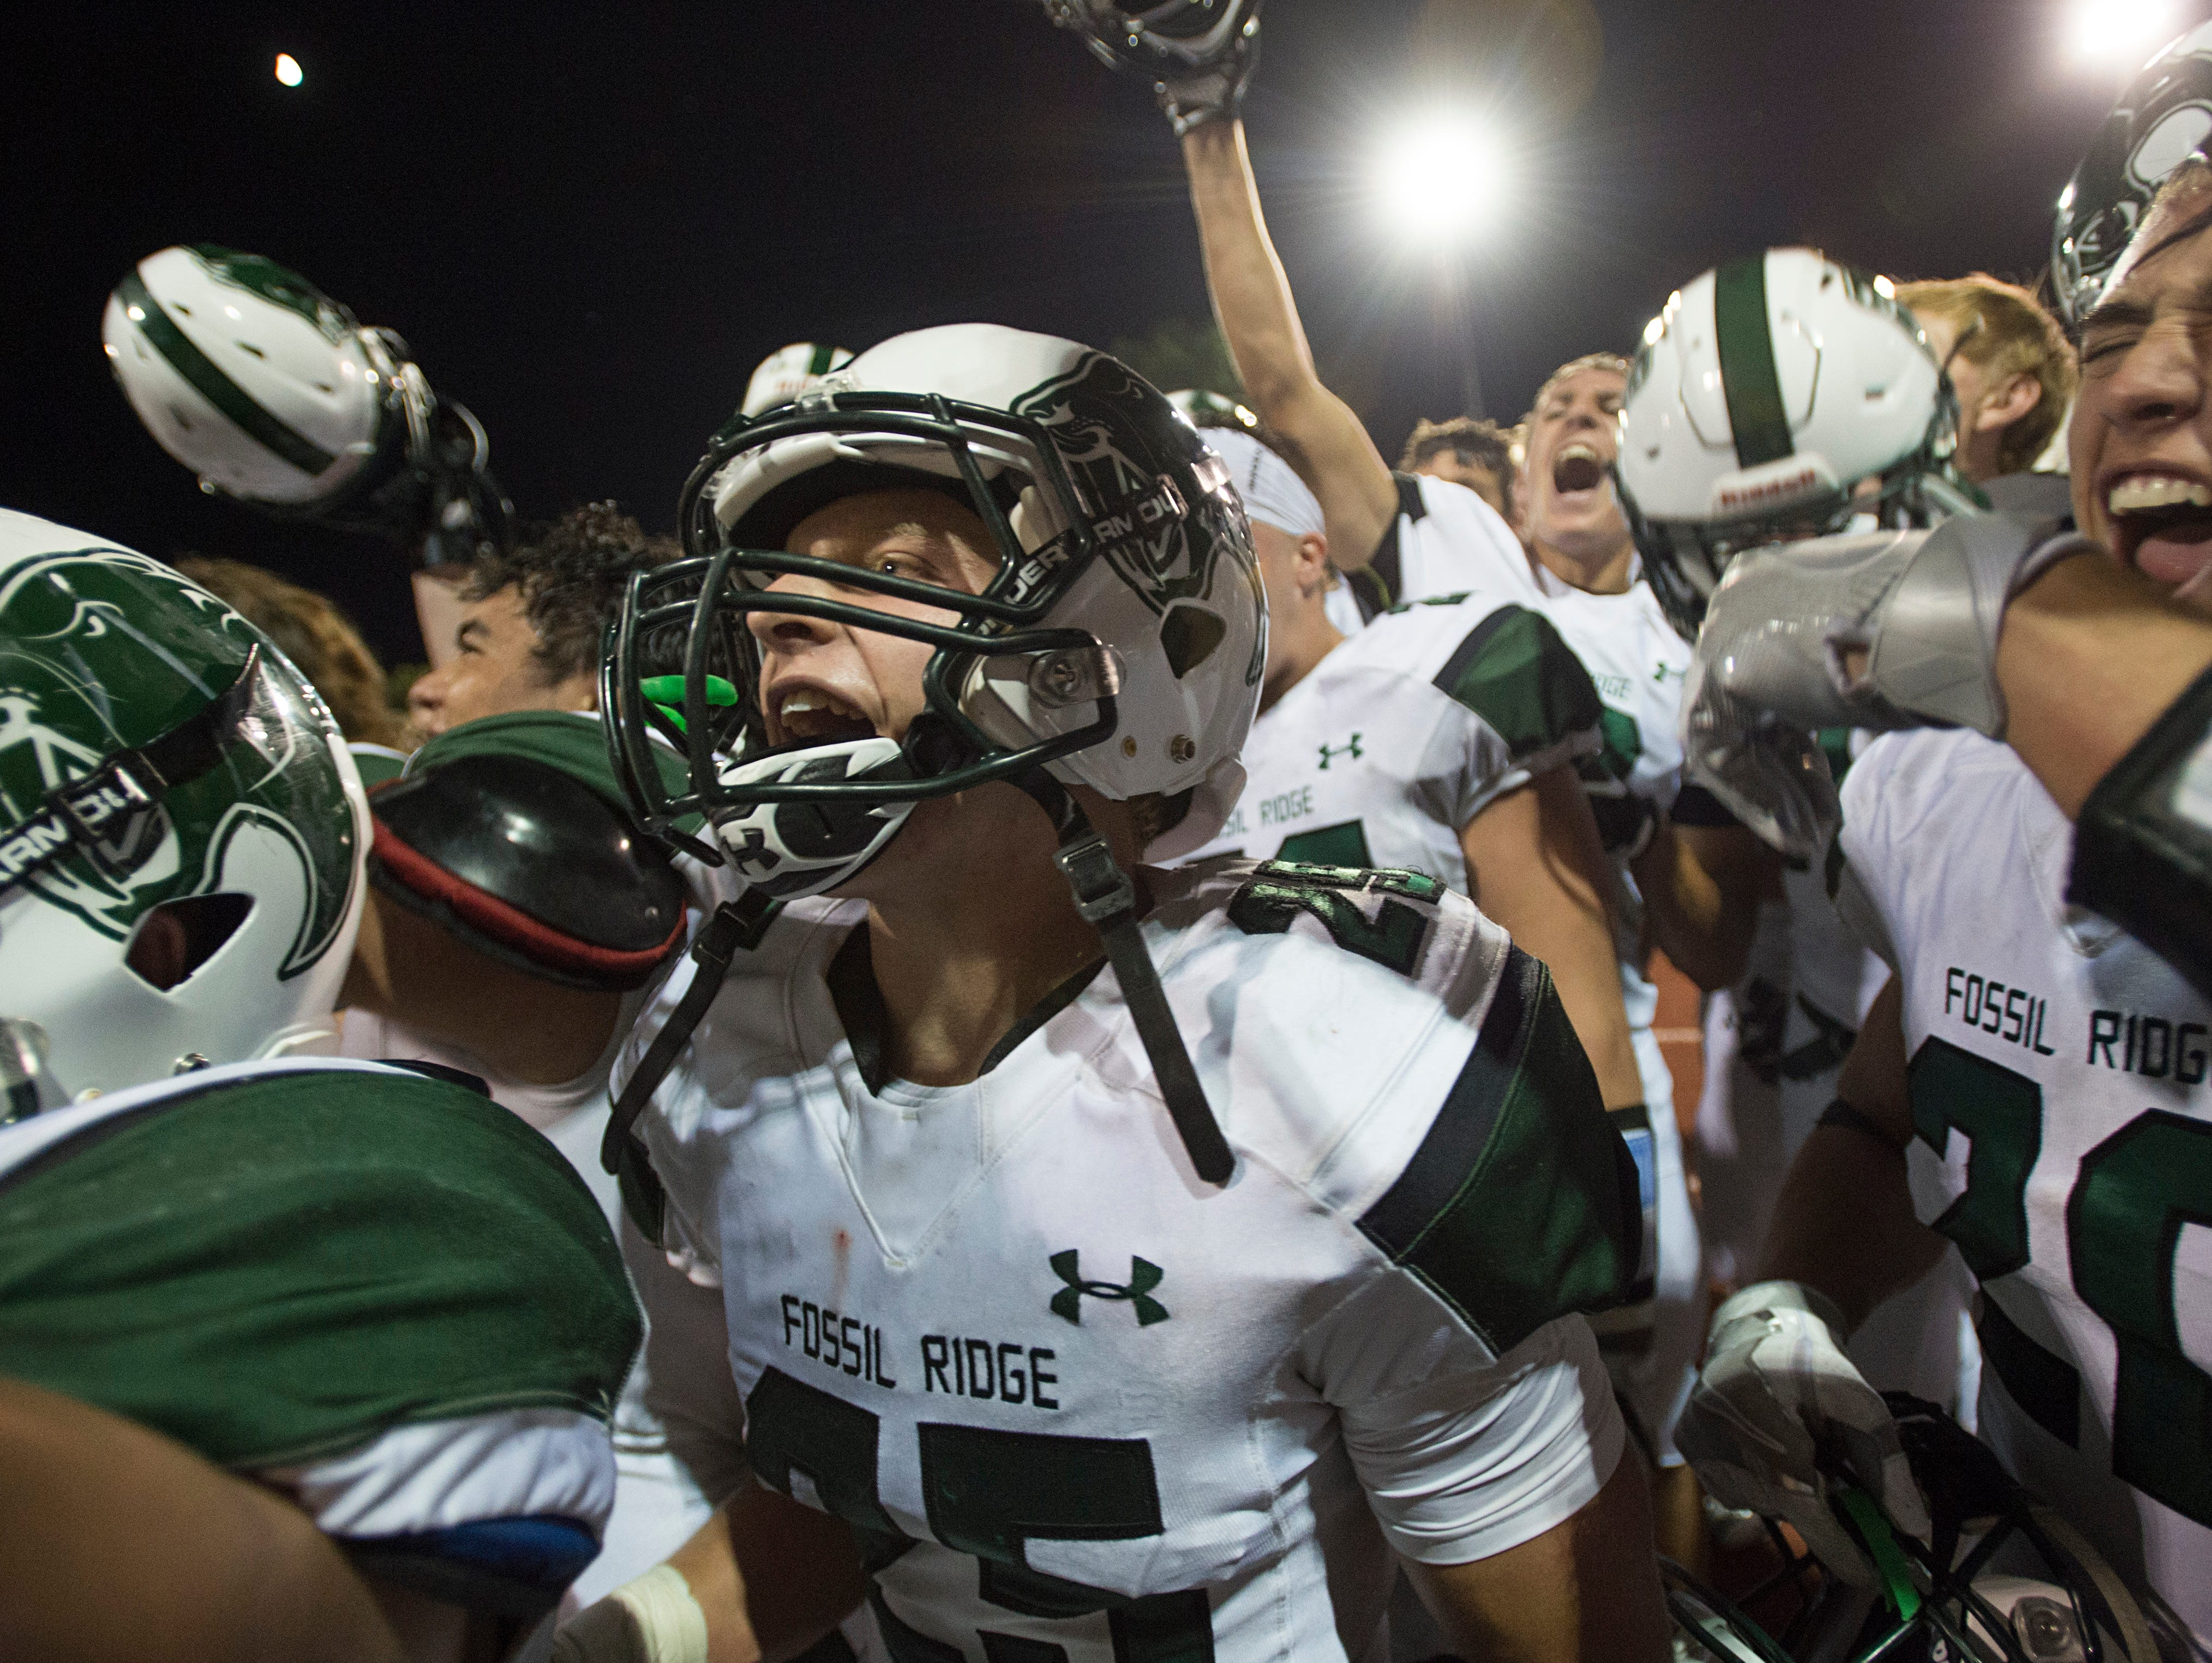 Fossil Ridge celebrates a 21-17 victory over Rocky Mountain High School at French Field Thursday.